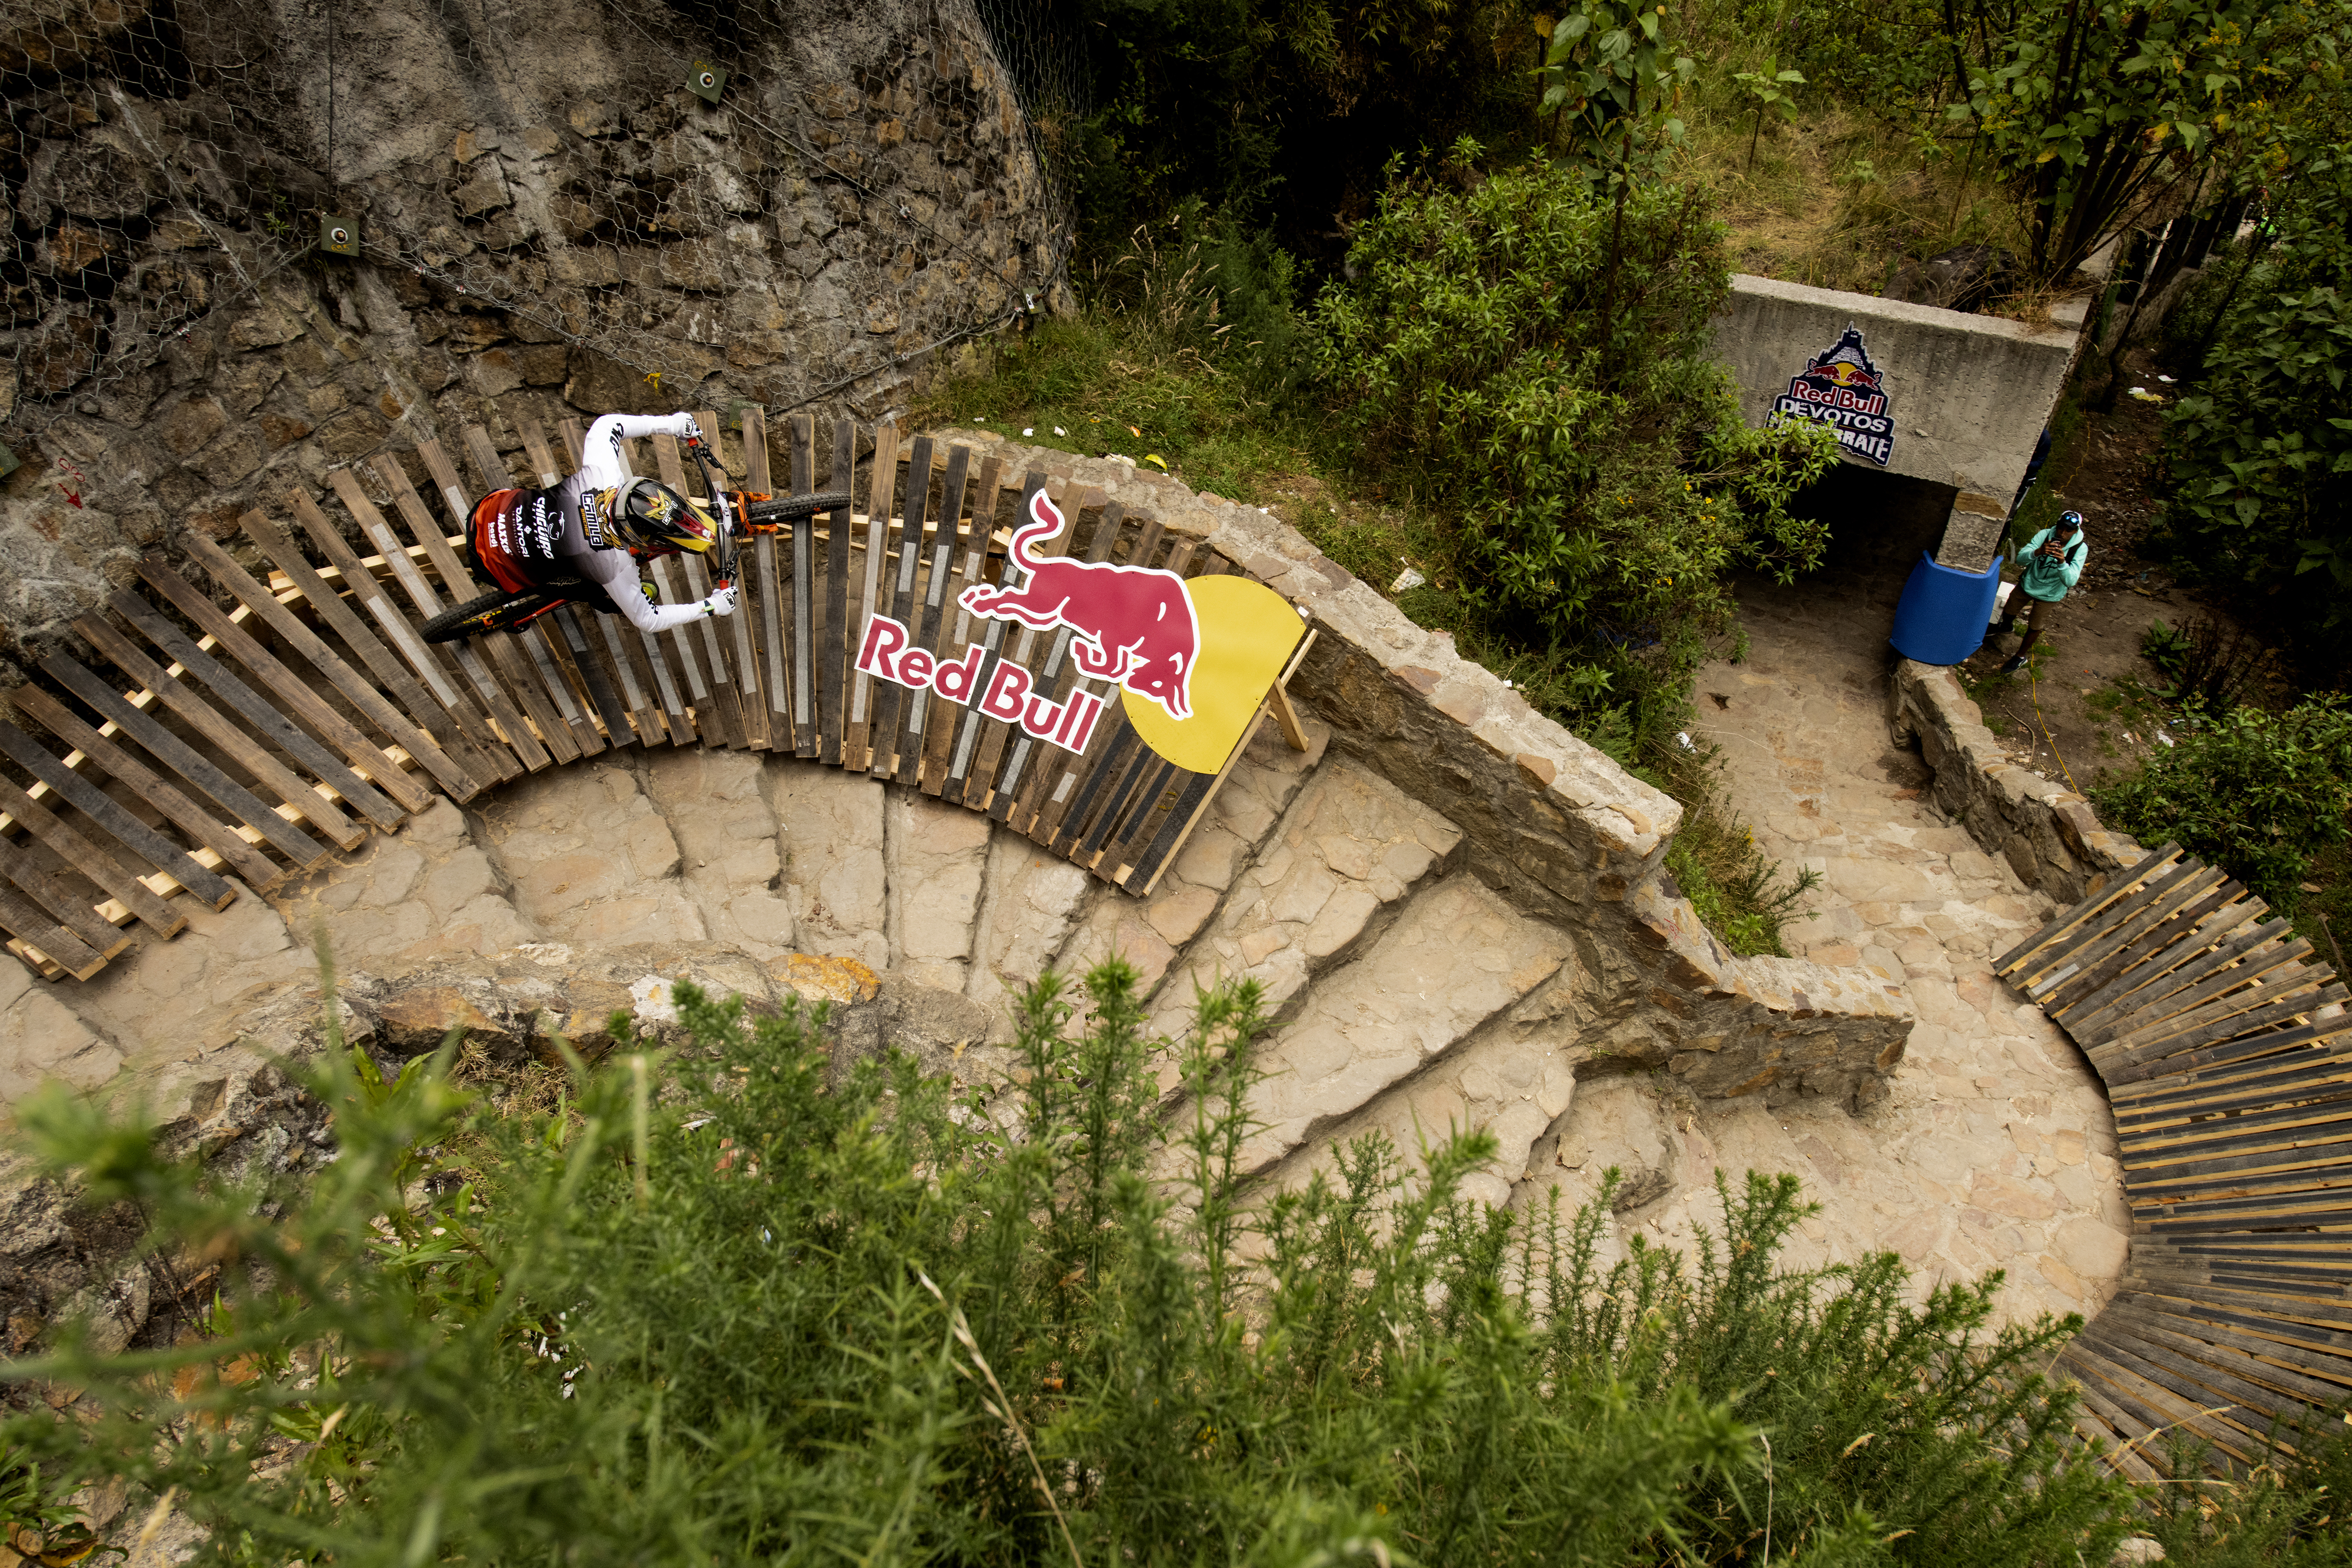 Red Bull Downhill 4